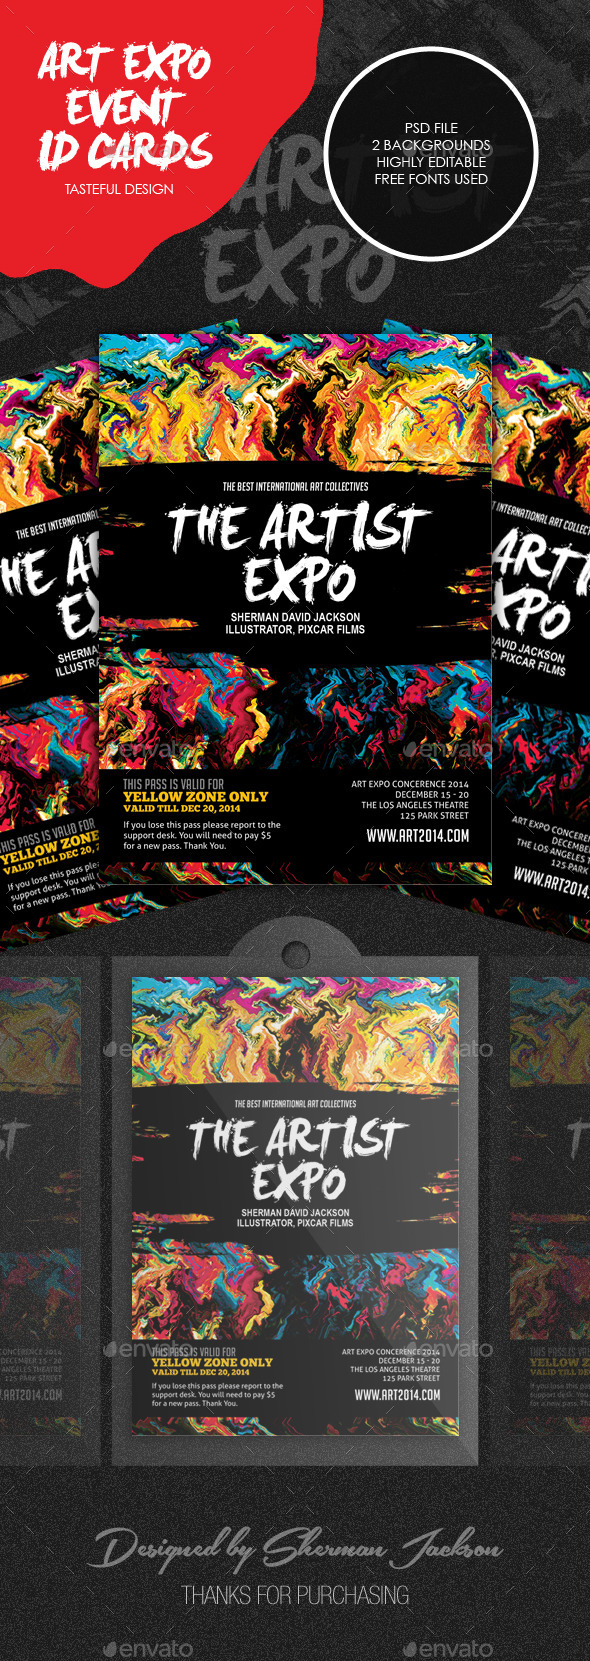 GraphicRiver Art Event Show & Expo ID Badge 8823166